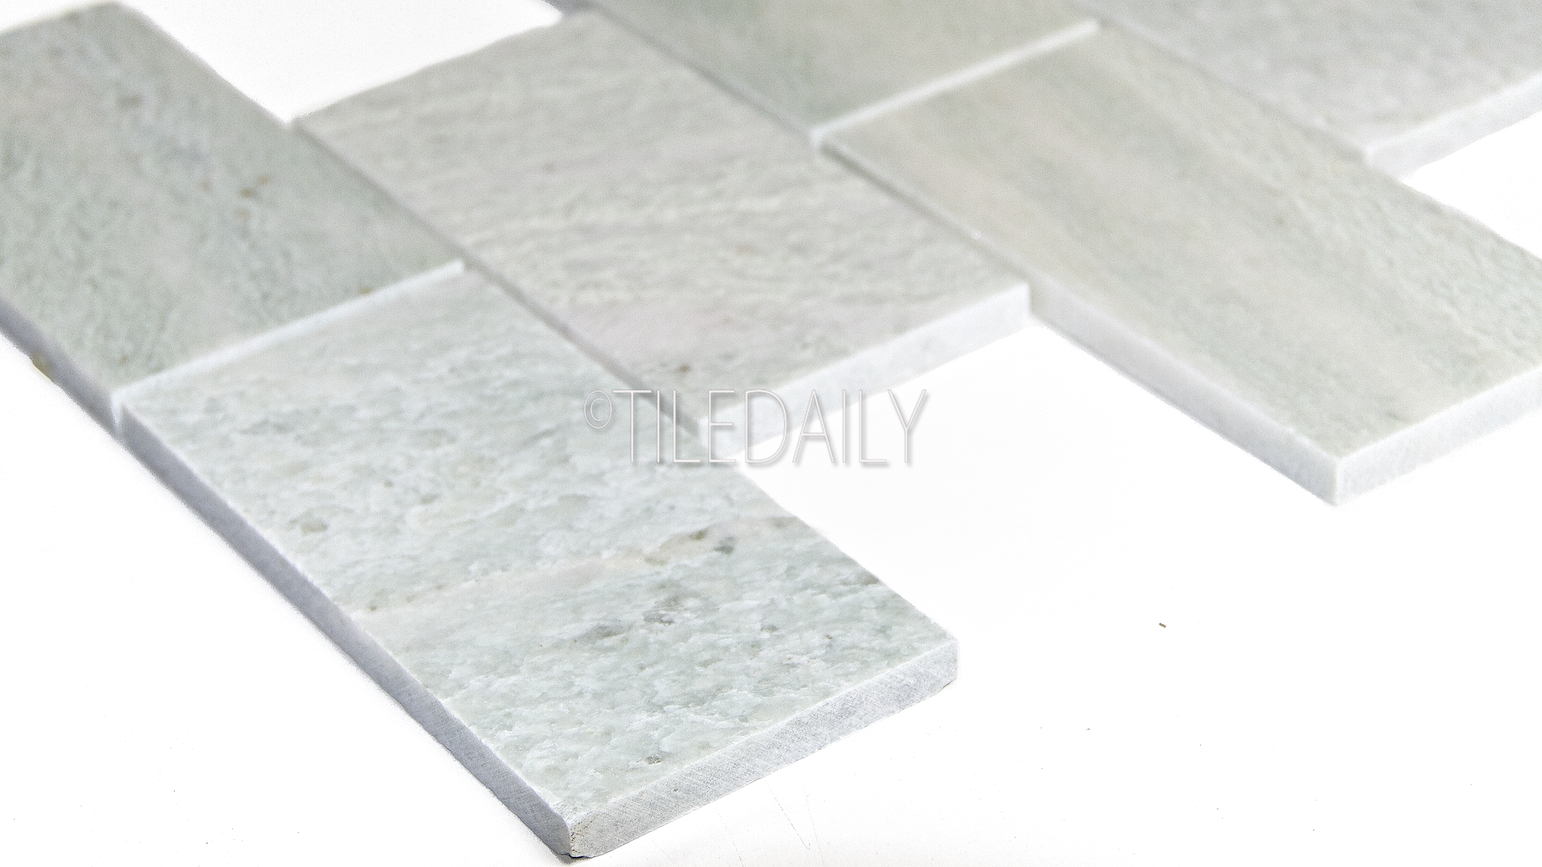 3x6 ming green marble subway tile available at tiledaily - Marble Subway Tile